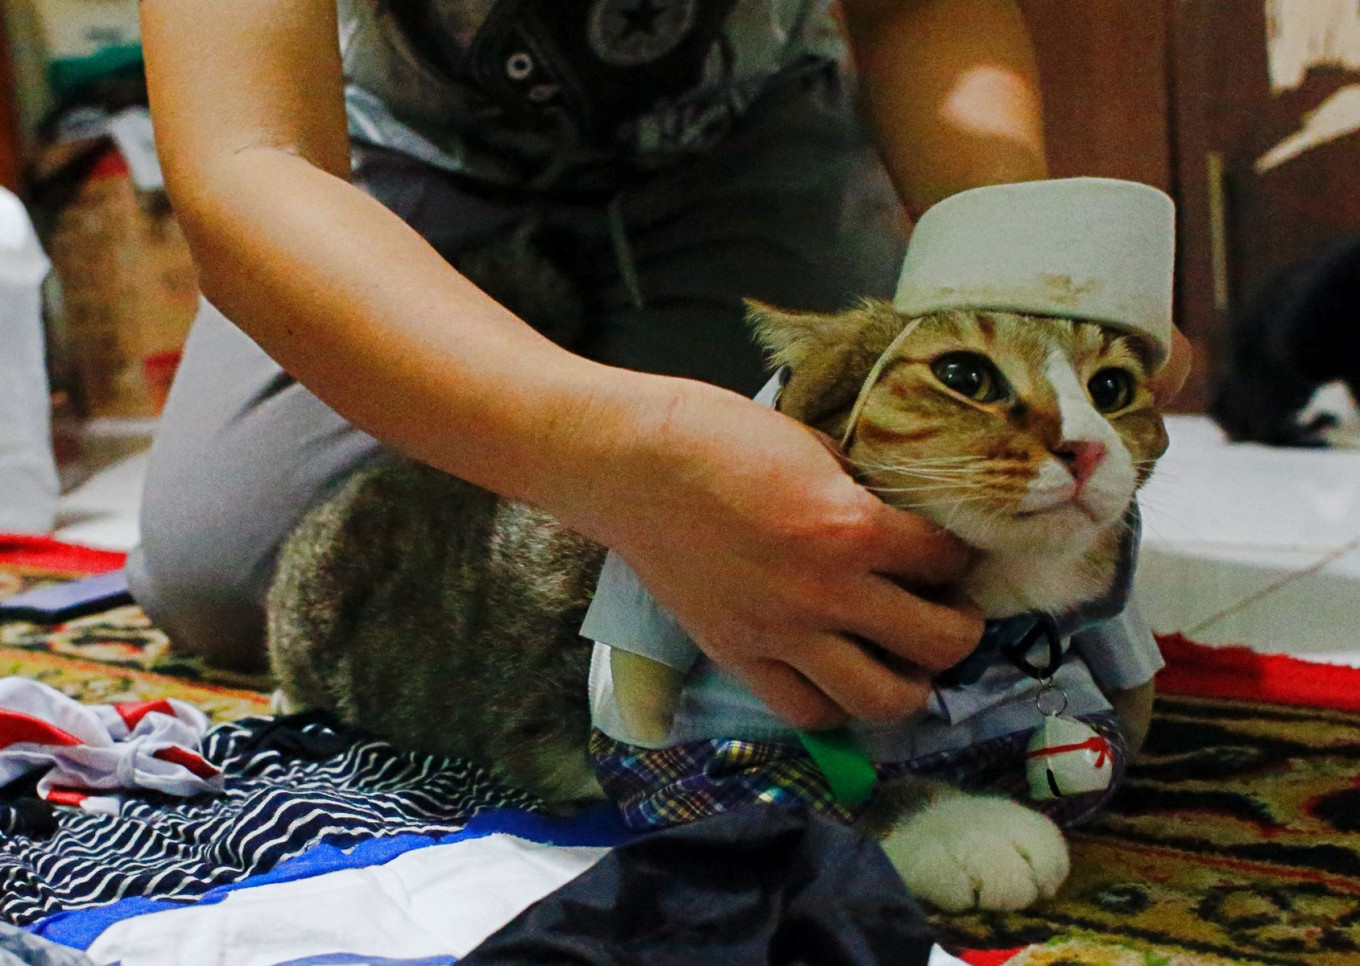 A cat is dressed in a cosplay costume in Jakarta, Indonesia, November 29, 2020. Reuters/Ajeng Dinar Ulfiana